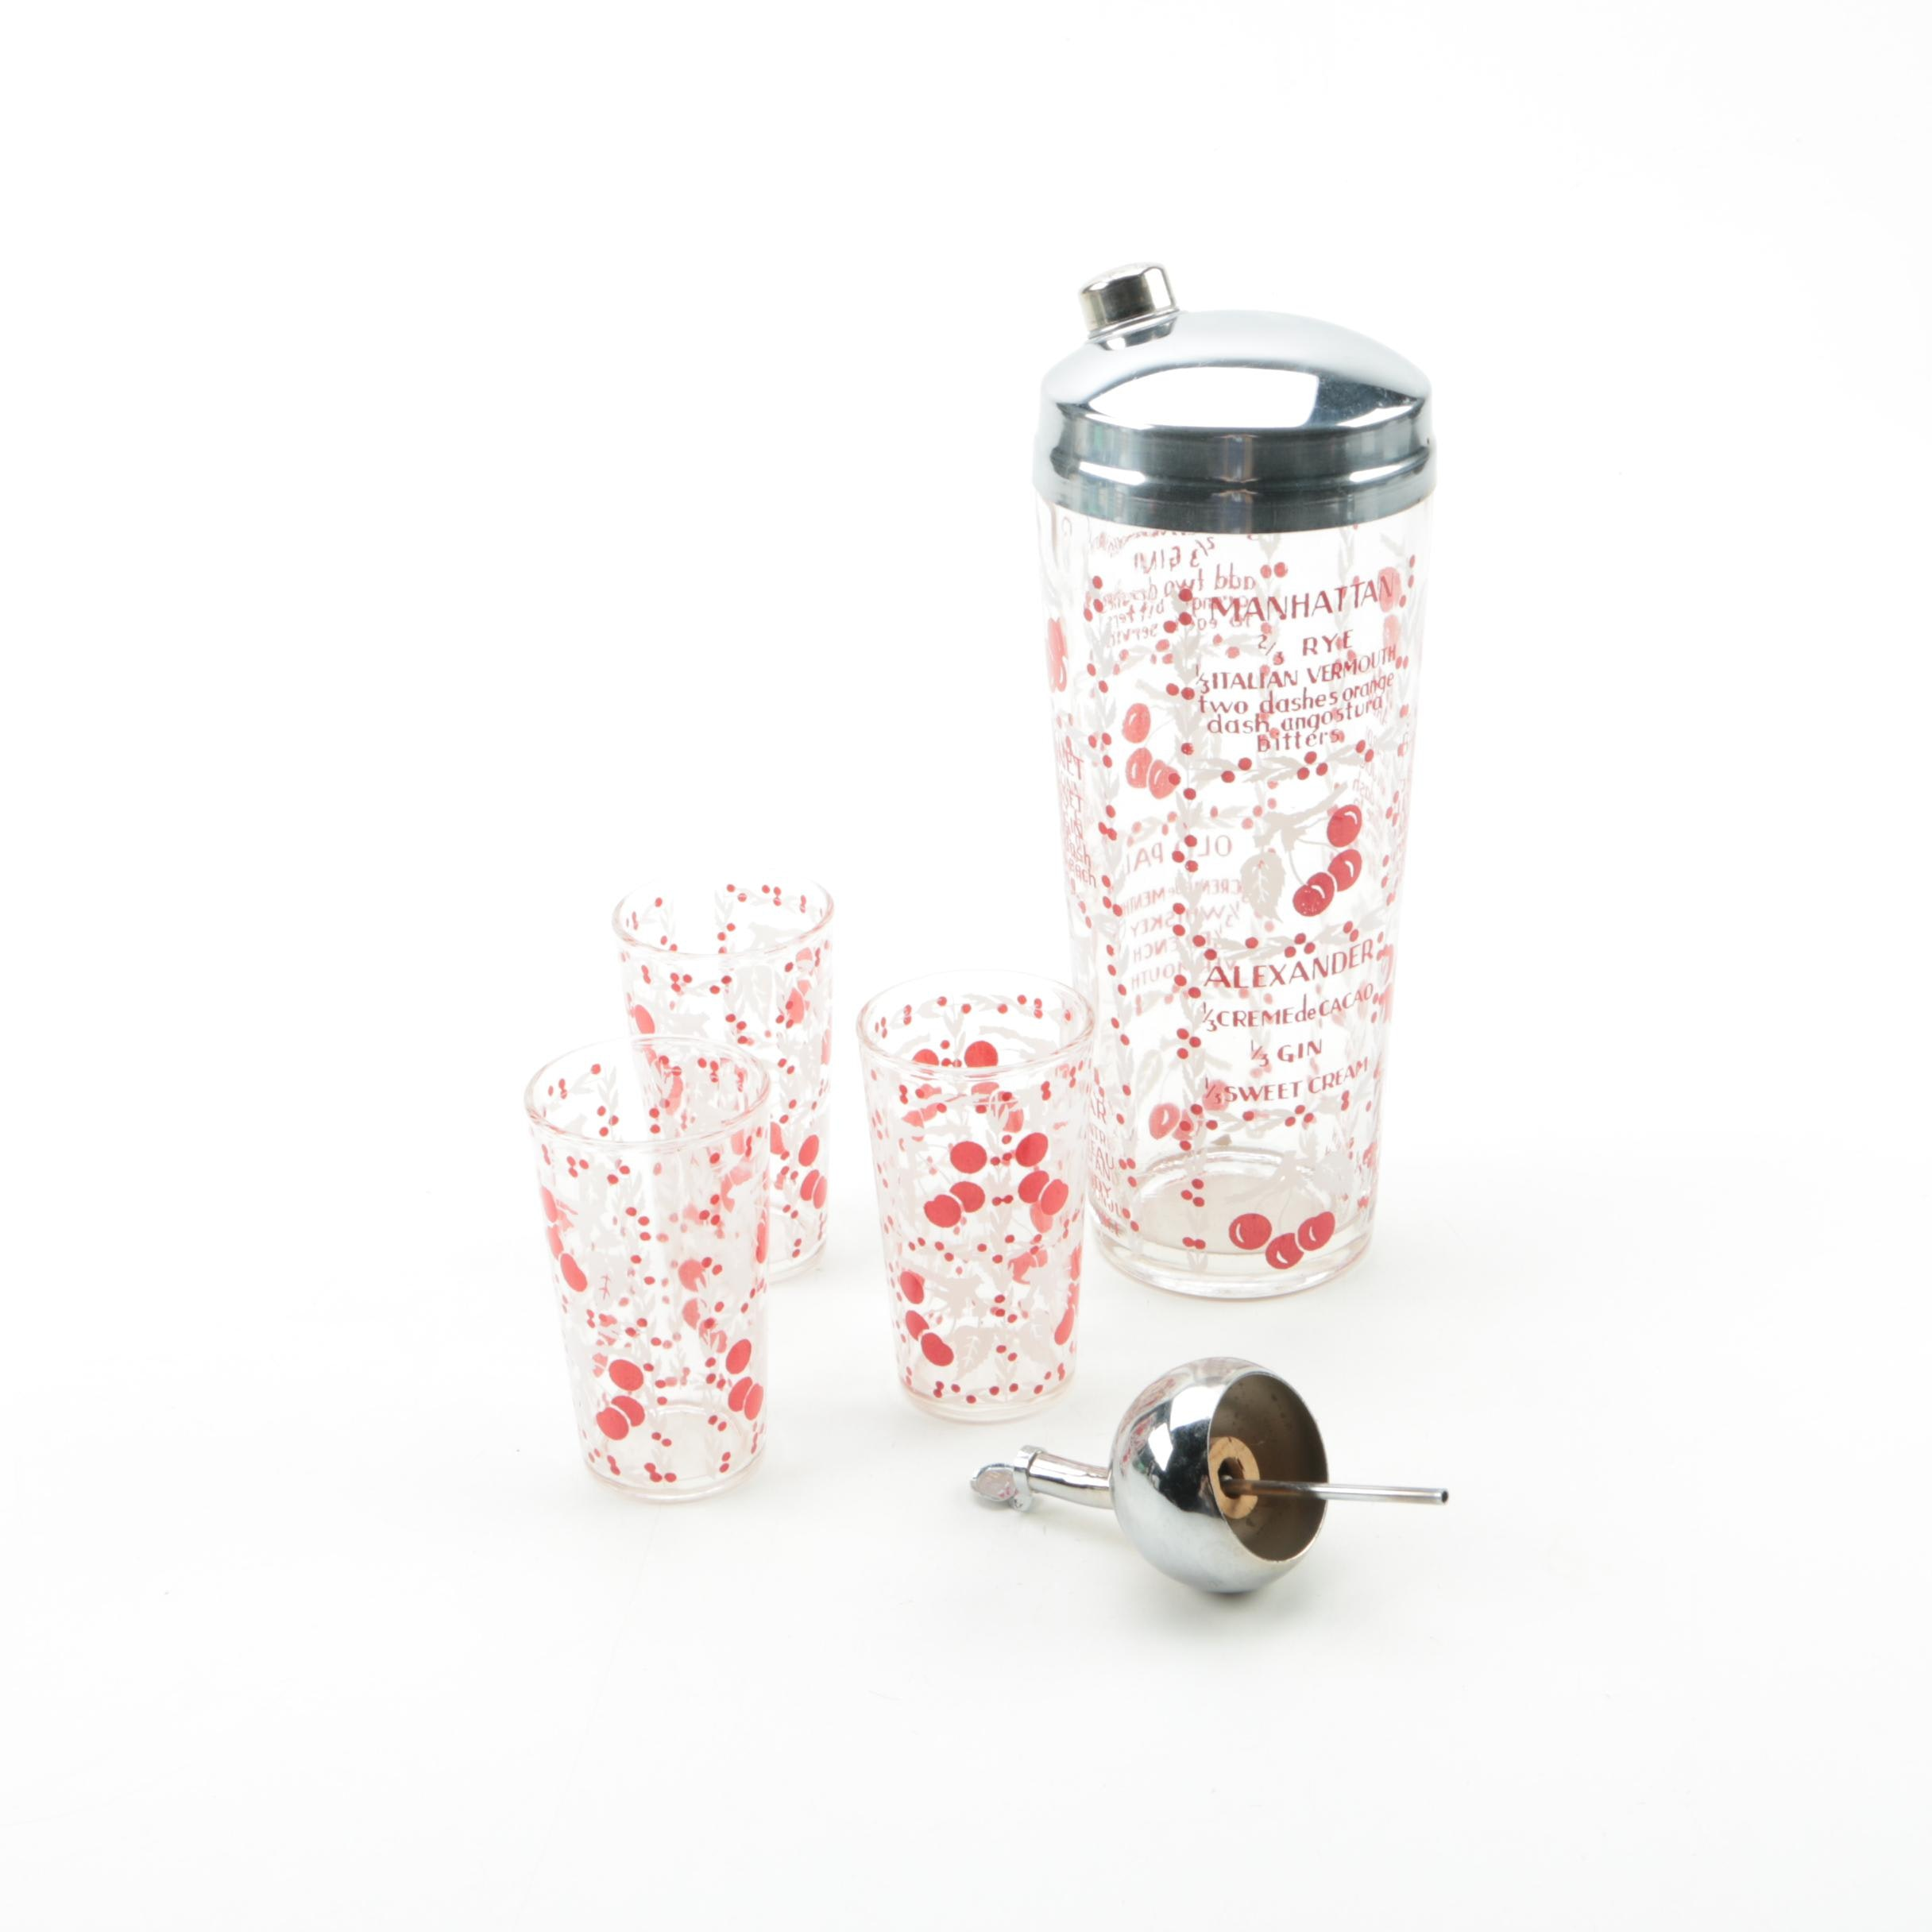 Vintage Glass Cocktail Shaker and Glasses with Red Cherries and Drink Recipes